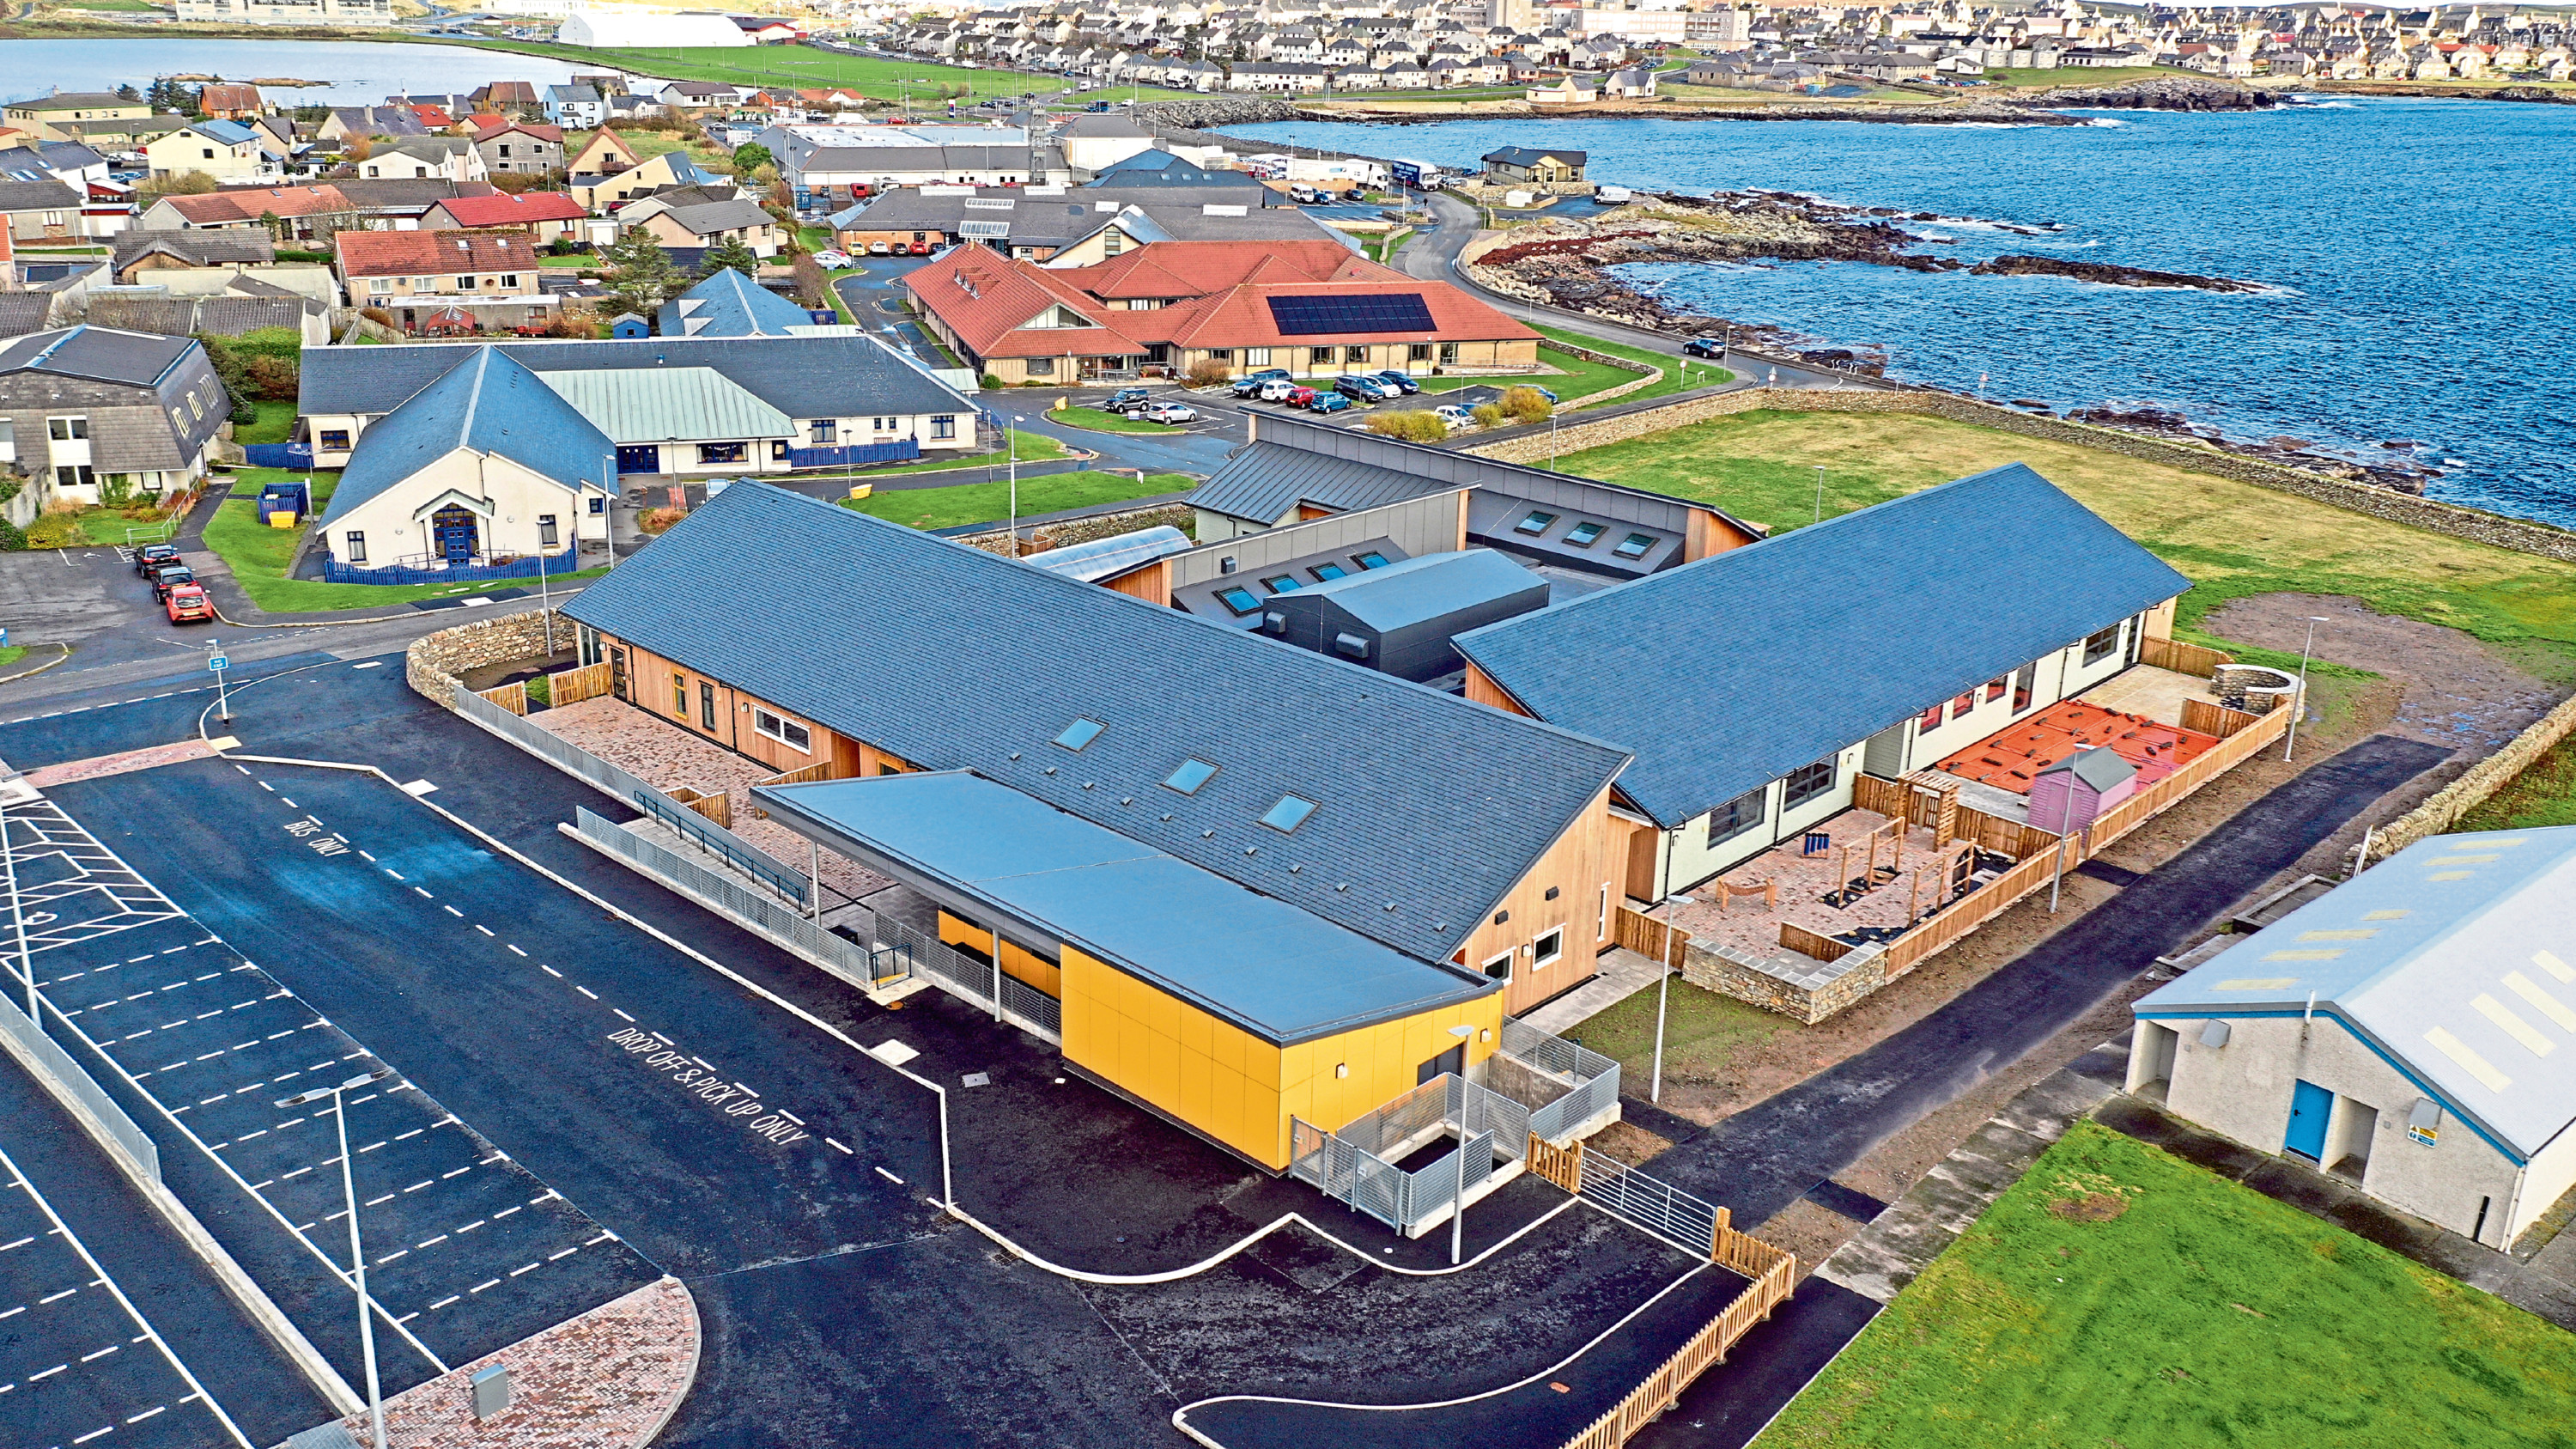 DITT Construction picked up the best public sector/local authority project award for the company's work on the Shetland Support Centre